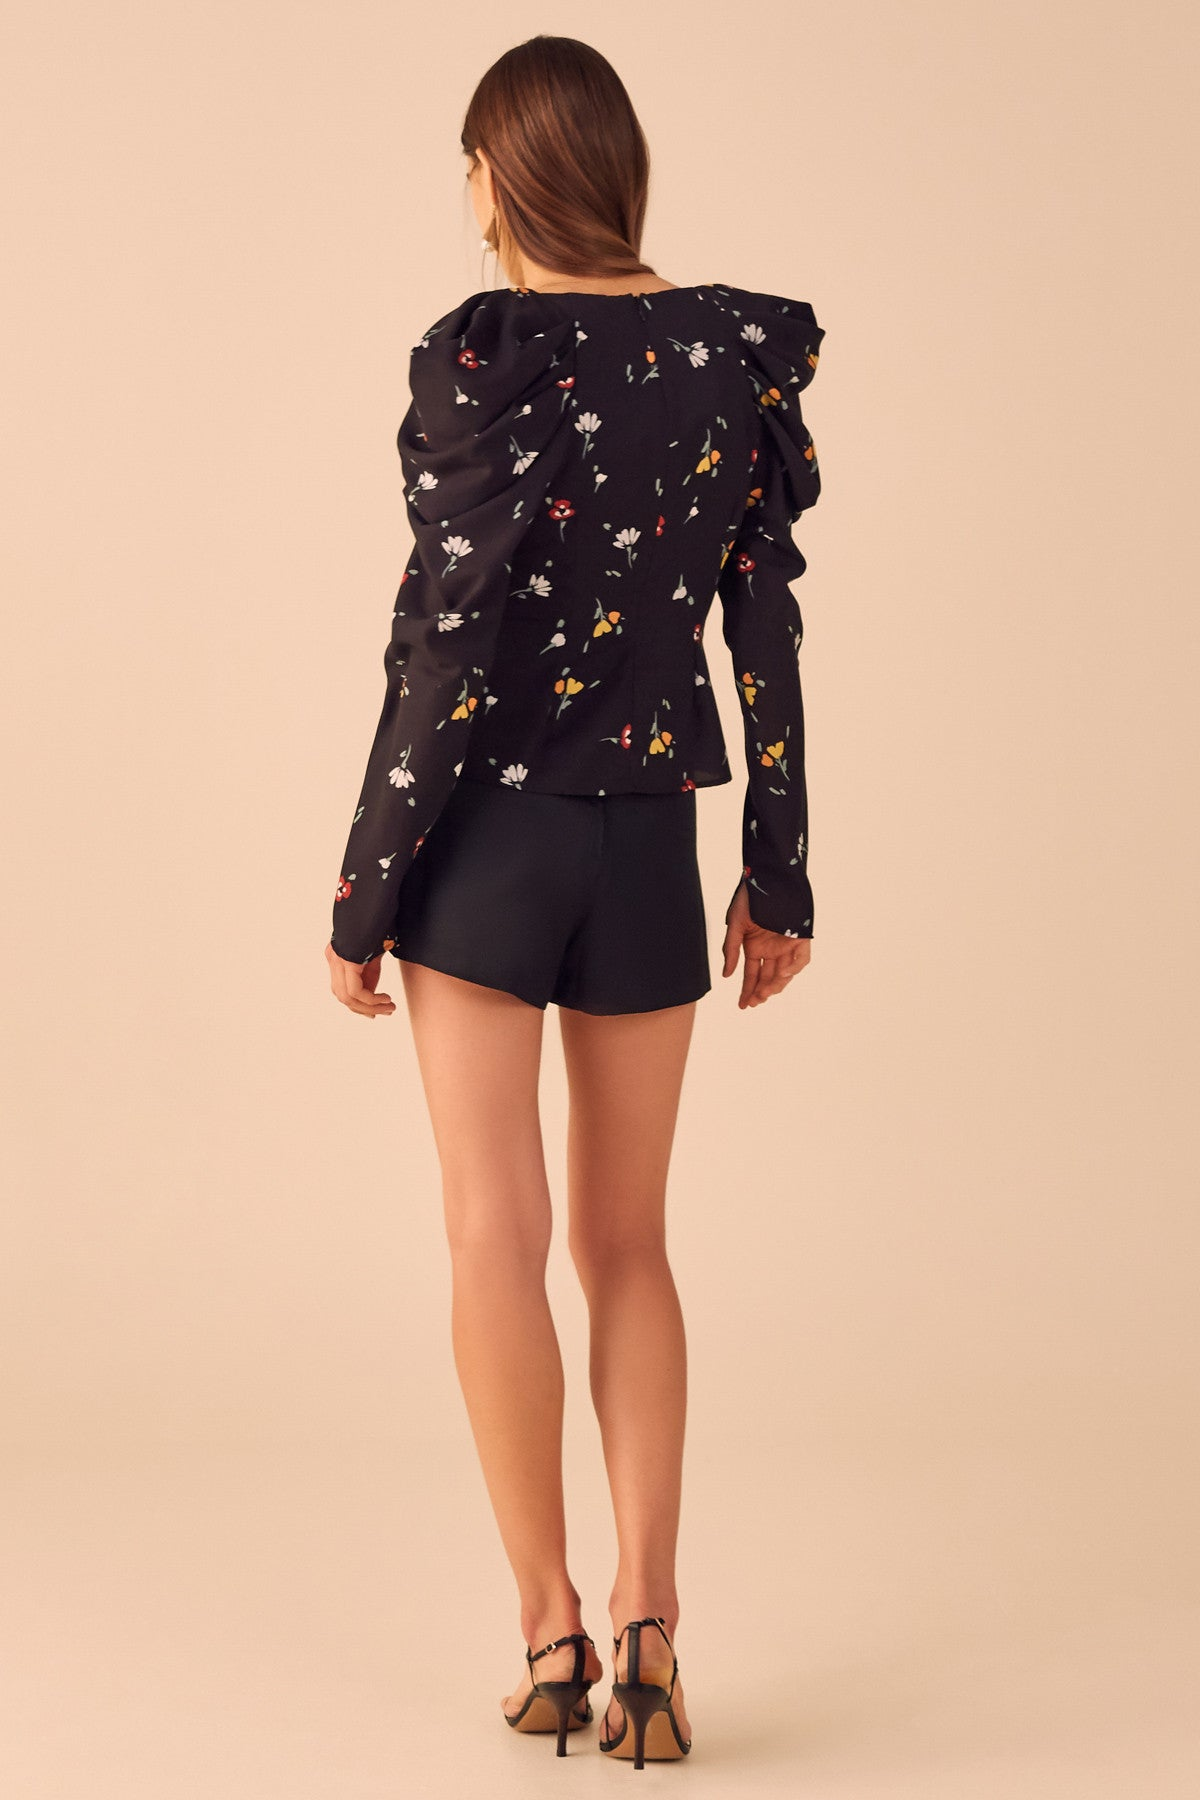 VICE LONG SLEEVE TOP black scattered floral